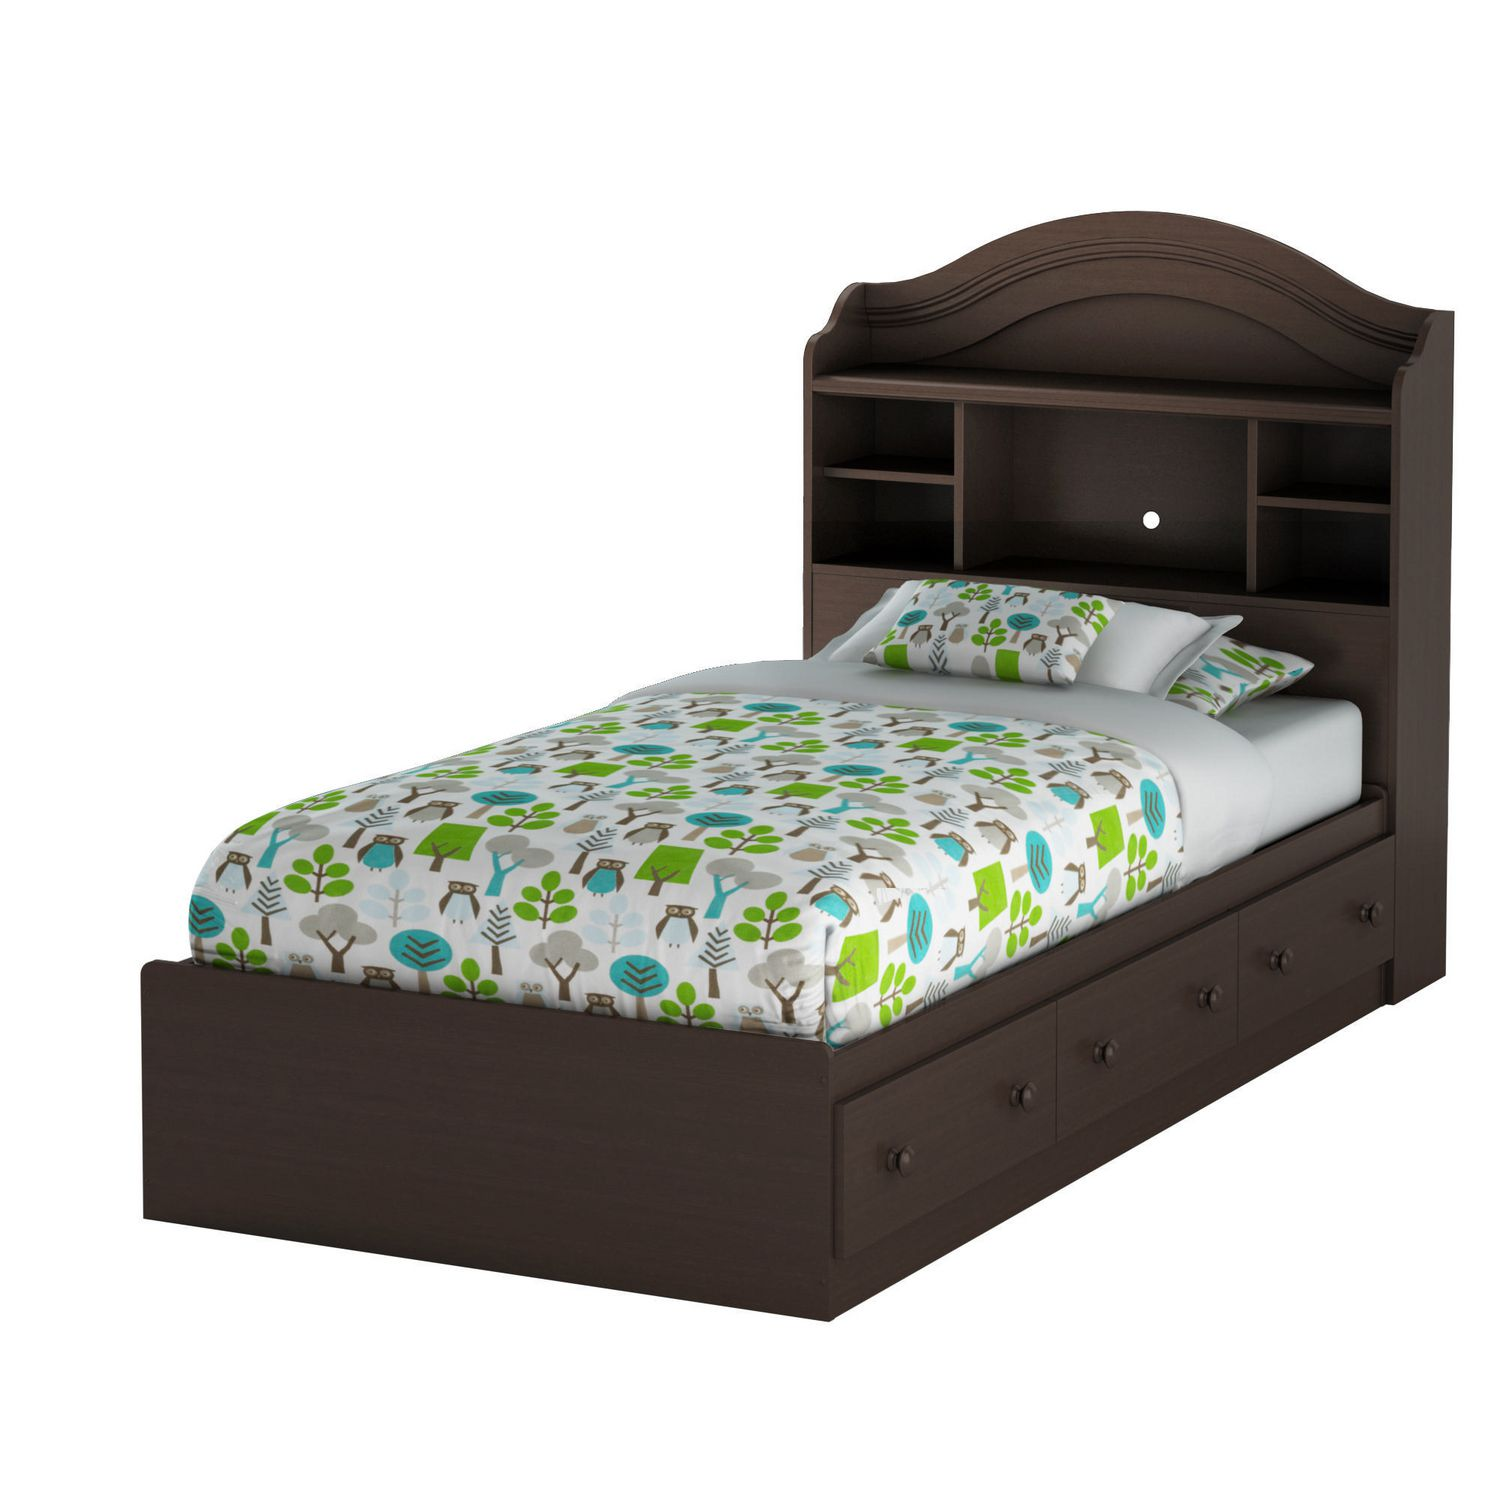 South Shore Summer Breeze Twin Storage Bed With Drawers And Bookcase Headboard 39 Inch Set